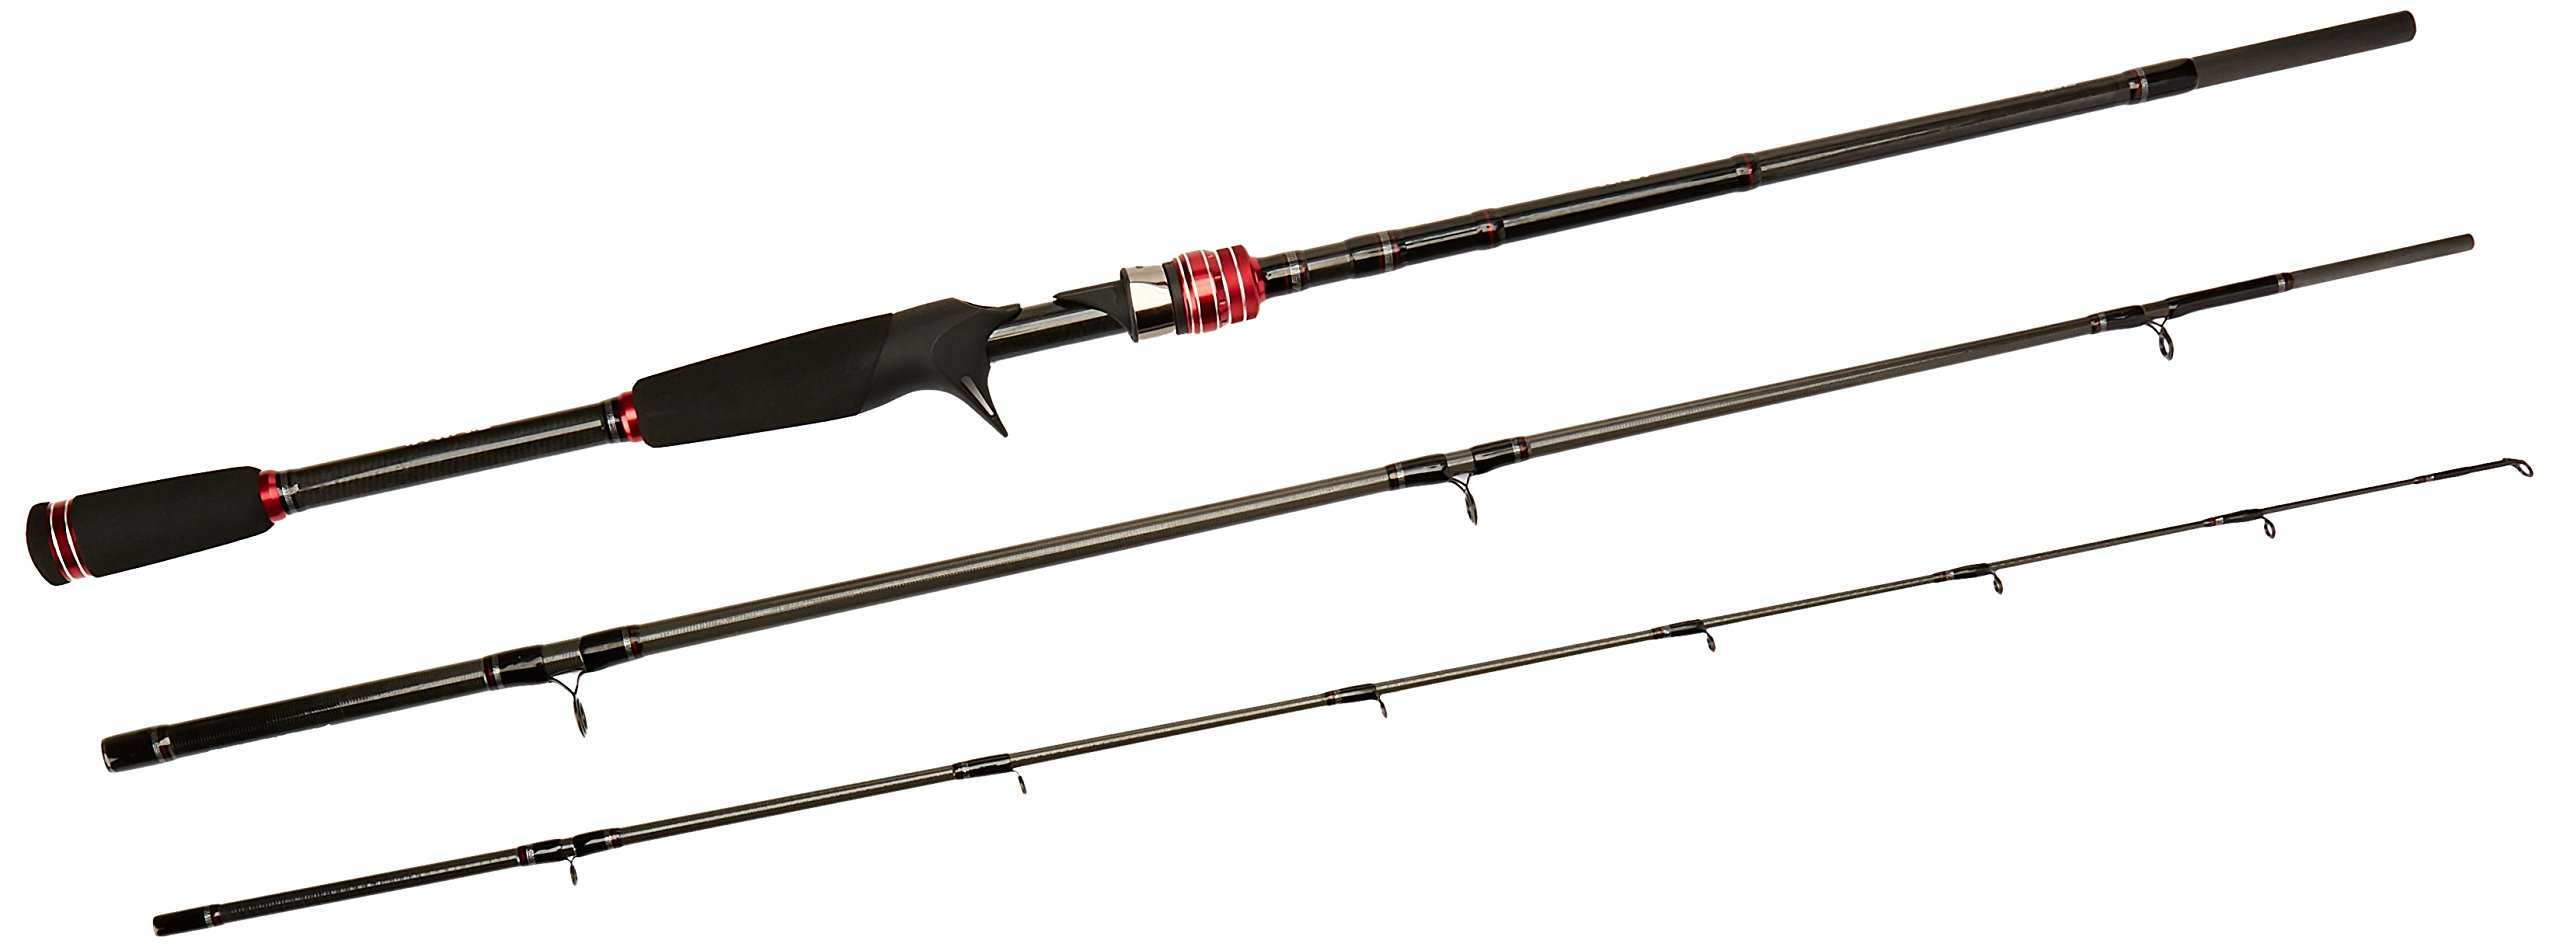 Daiwa Ardito-TR Travel Trigger Rod (3 Piece), Medium/7' by Daiwa